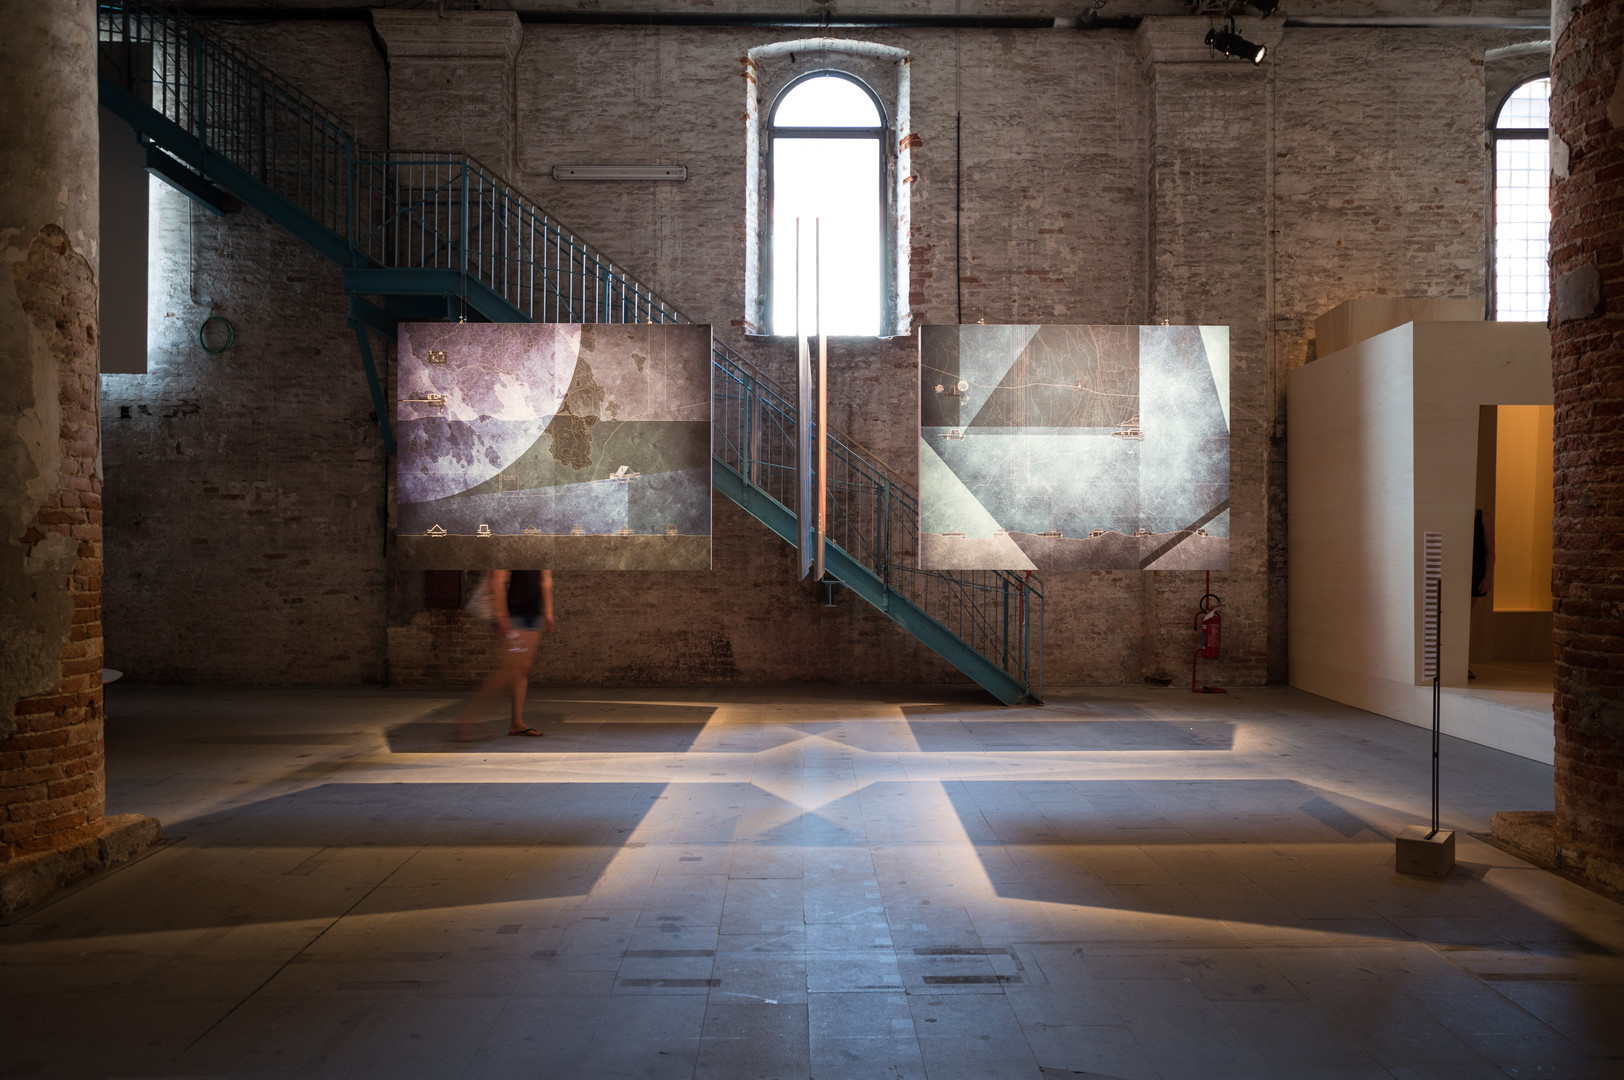 Two hanging drawings of Angela Deuber Architect's pavilion at the Venice Biennale 2018